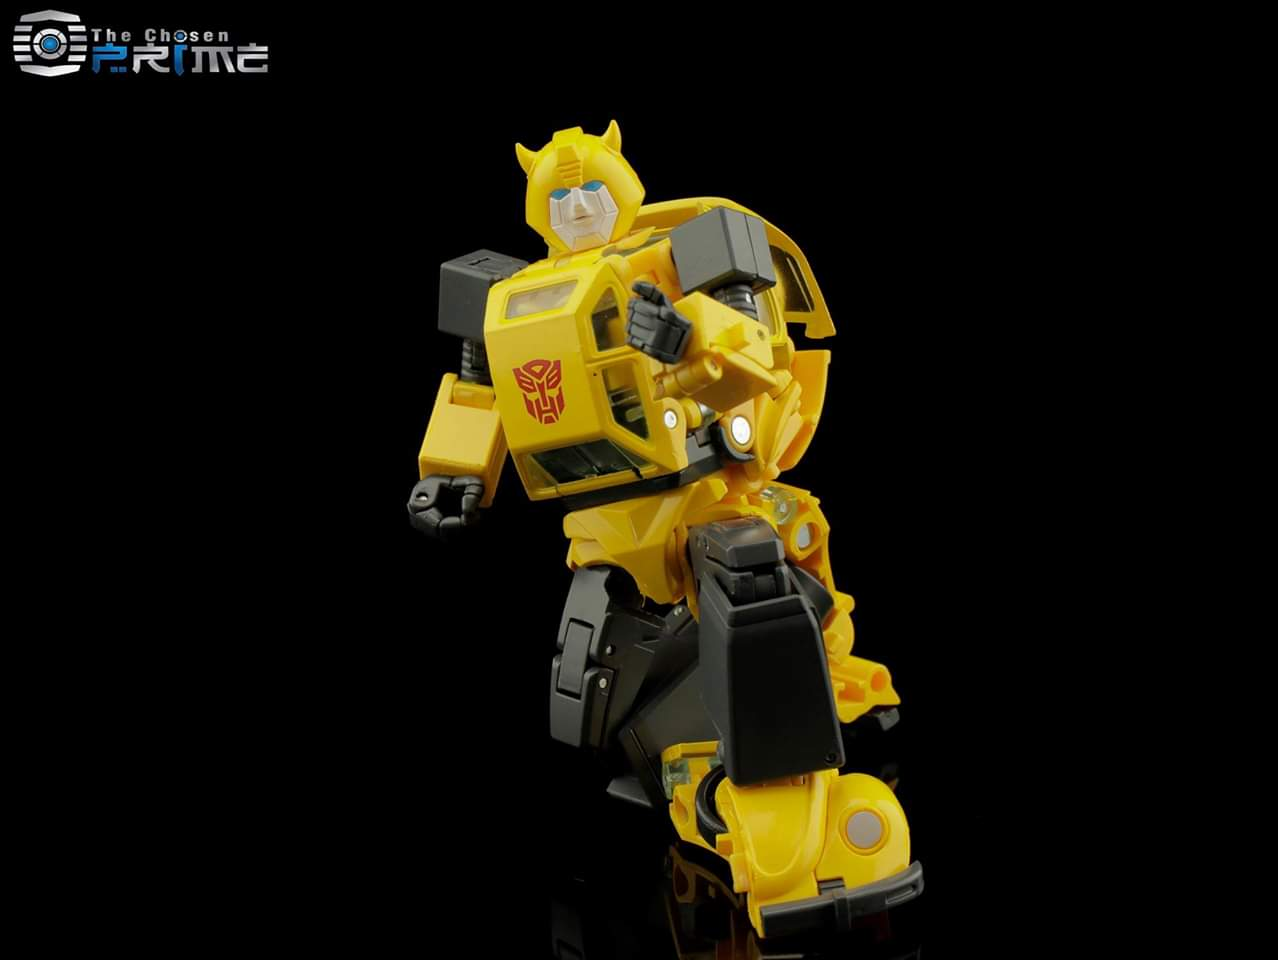 [Masterpiece] MP-45 Bumblebee/Bourdon v2.0 - Page 2 AiS1q9vI_o